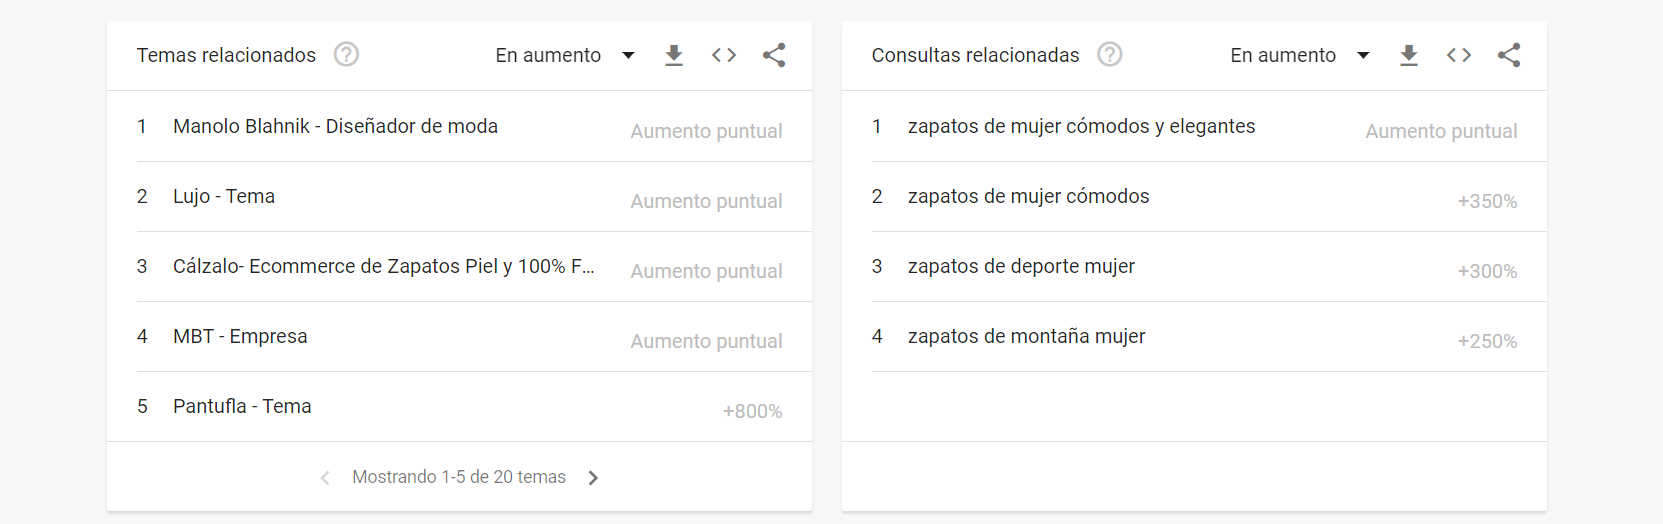 google trends palabras clave